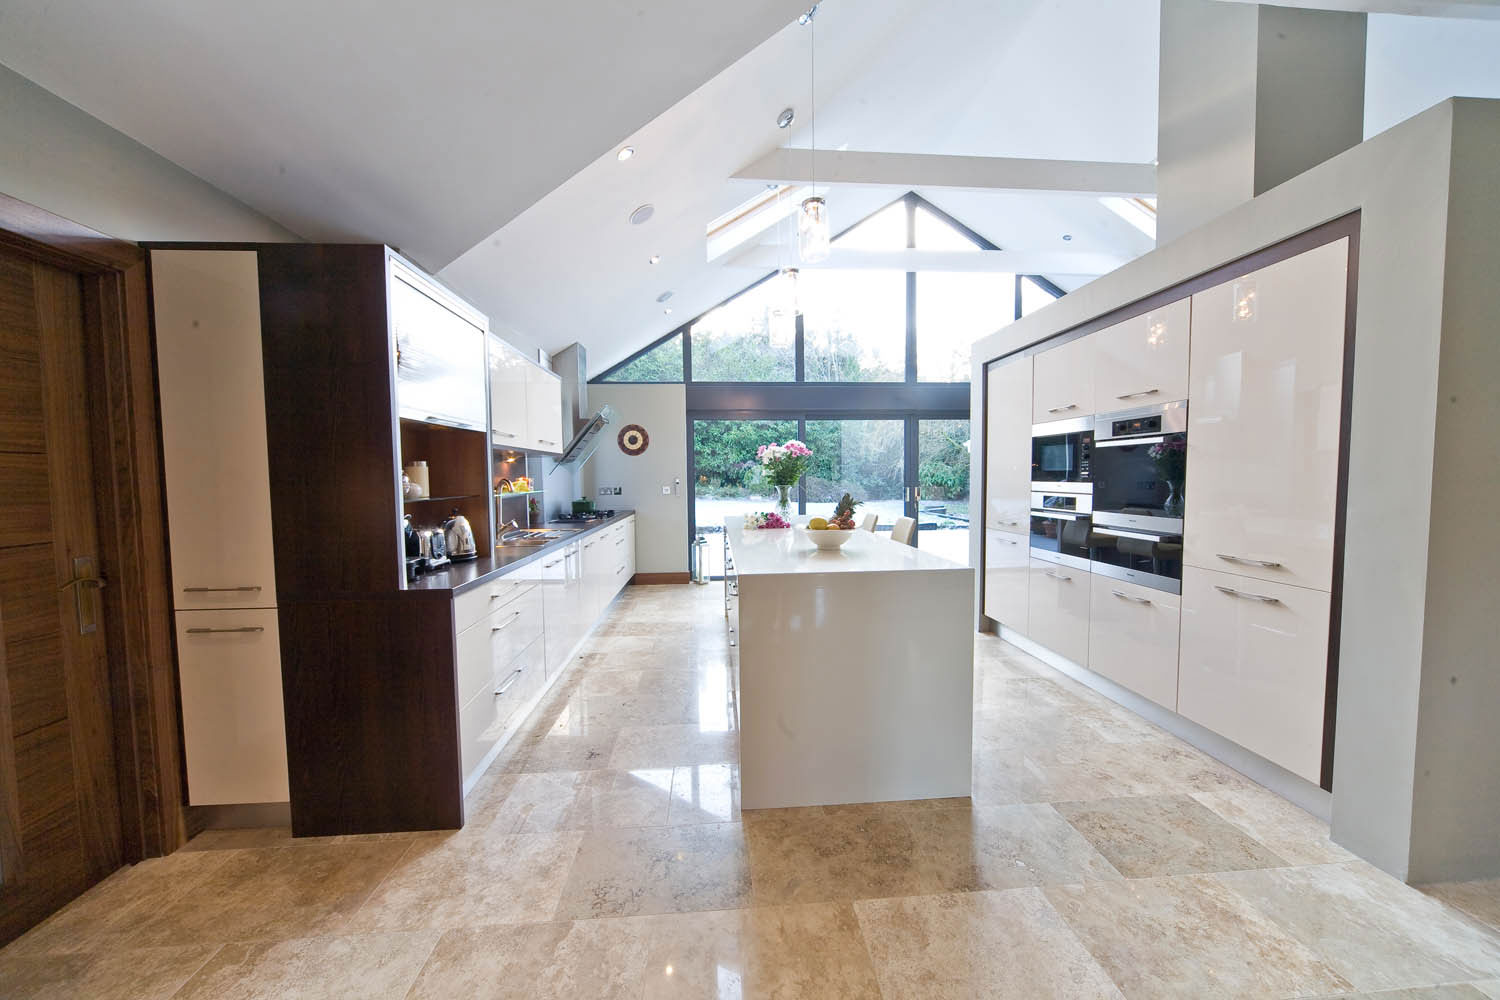 Celtic interiors have the ability and experience to design the perfect kitchen for you